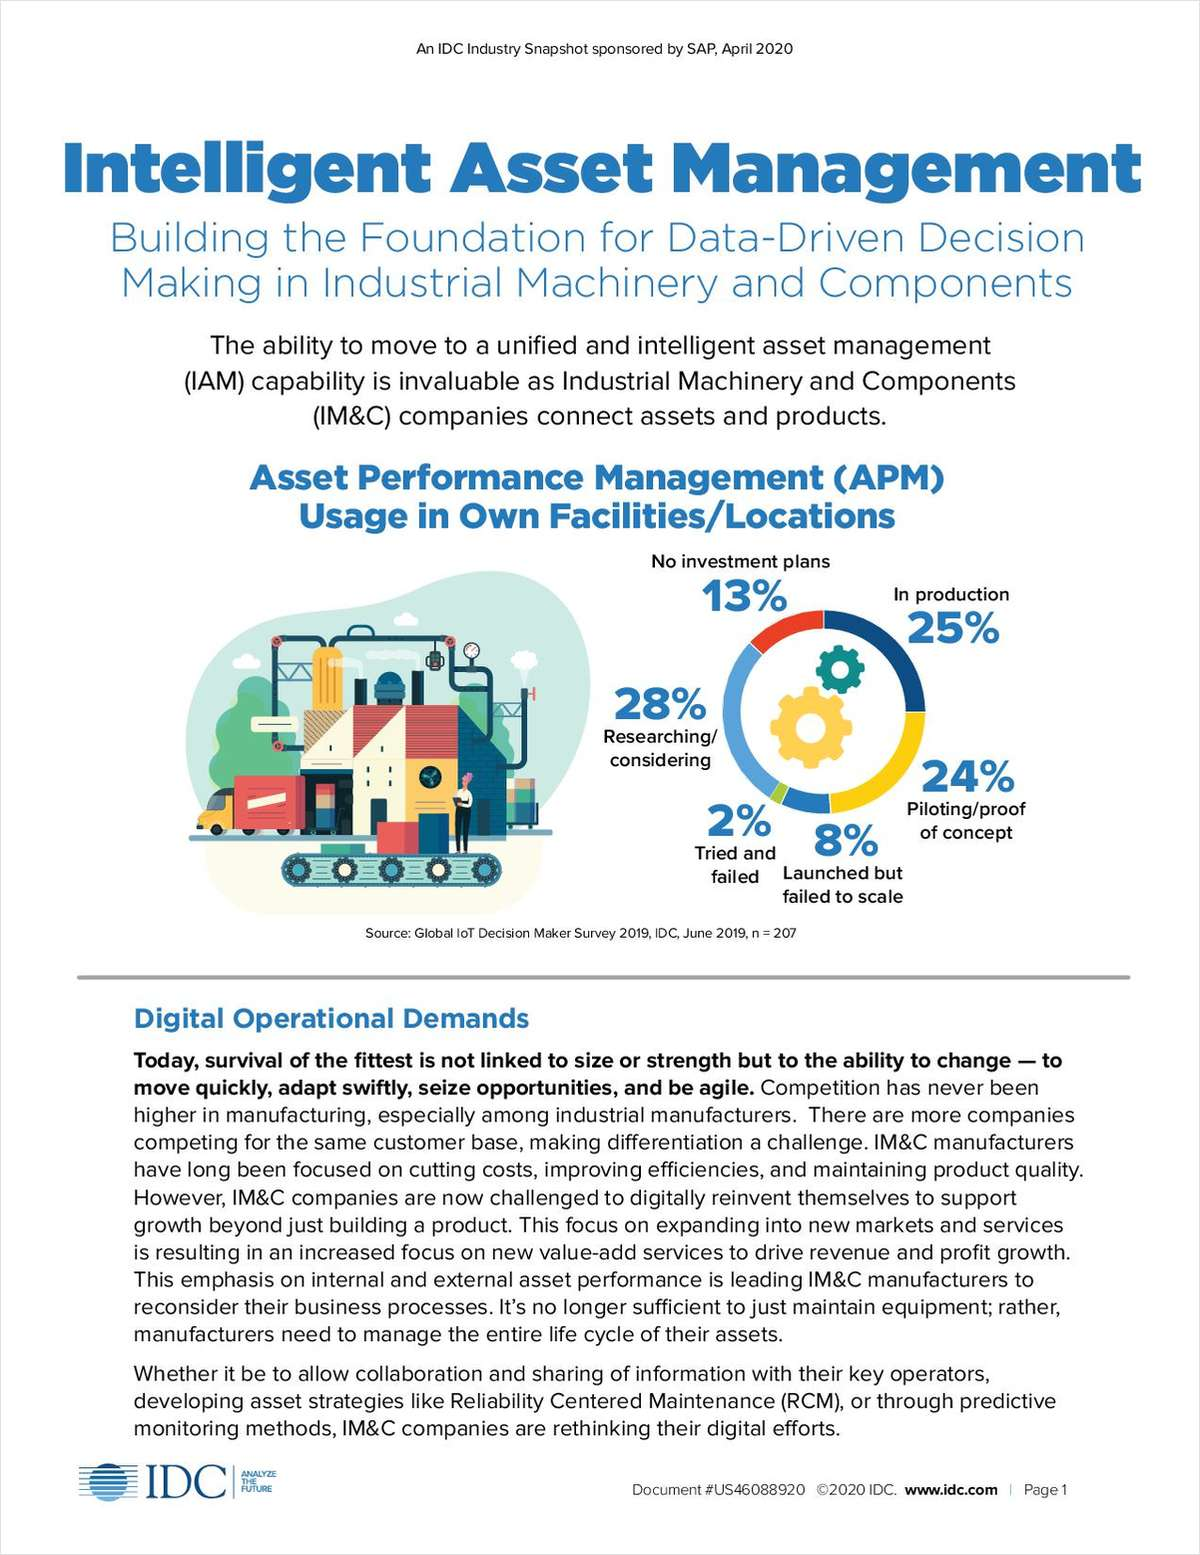 IDC Industry Snapshot: Intelligent Asset Management: Building the Foundation for Data-Driven Decision Making in Industrial Machinery and Components